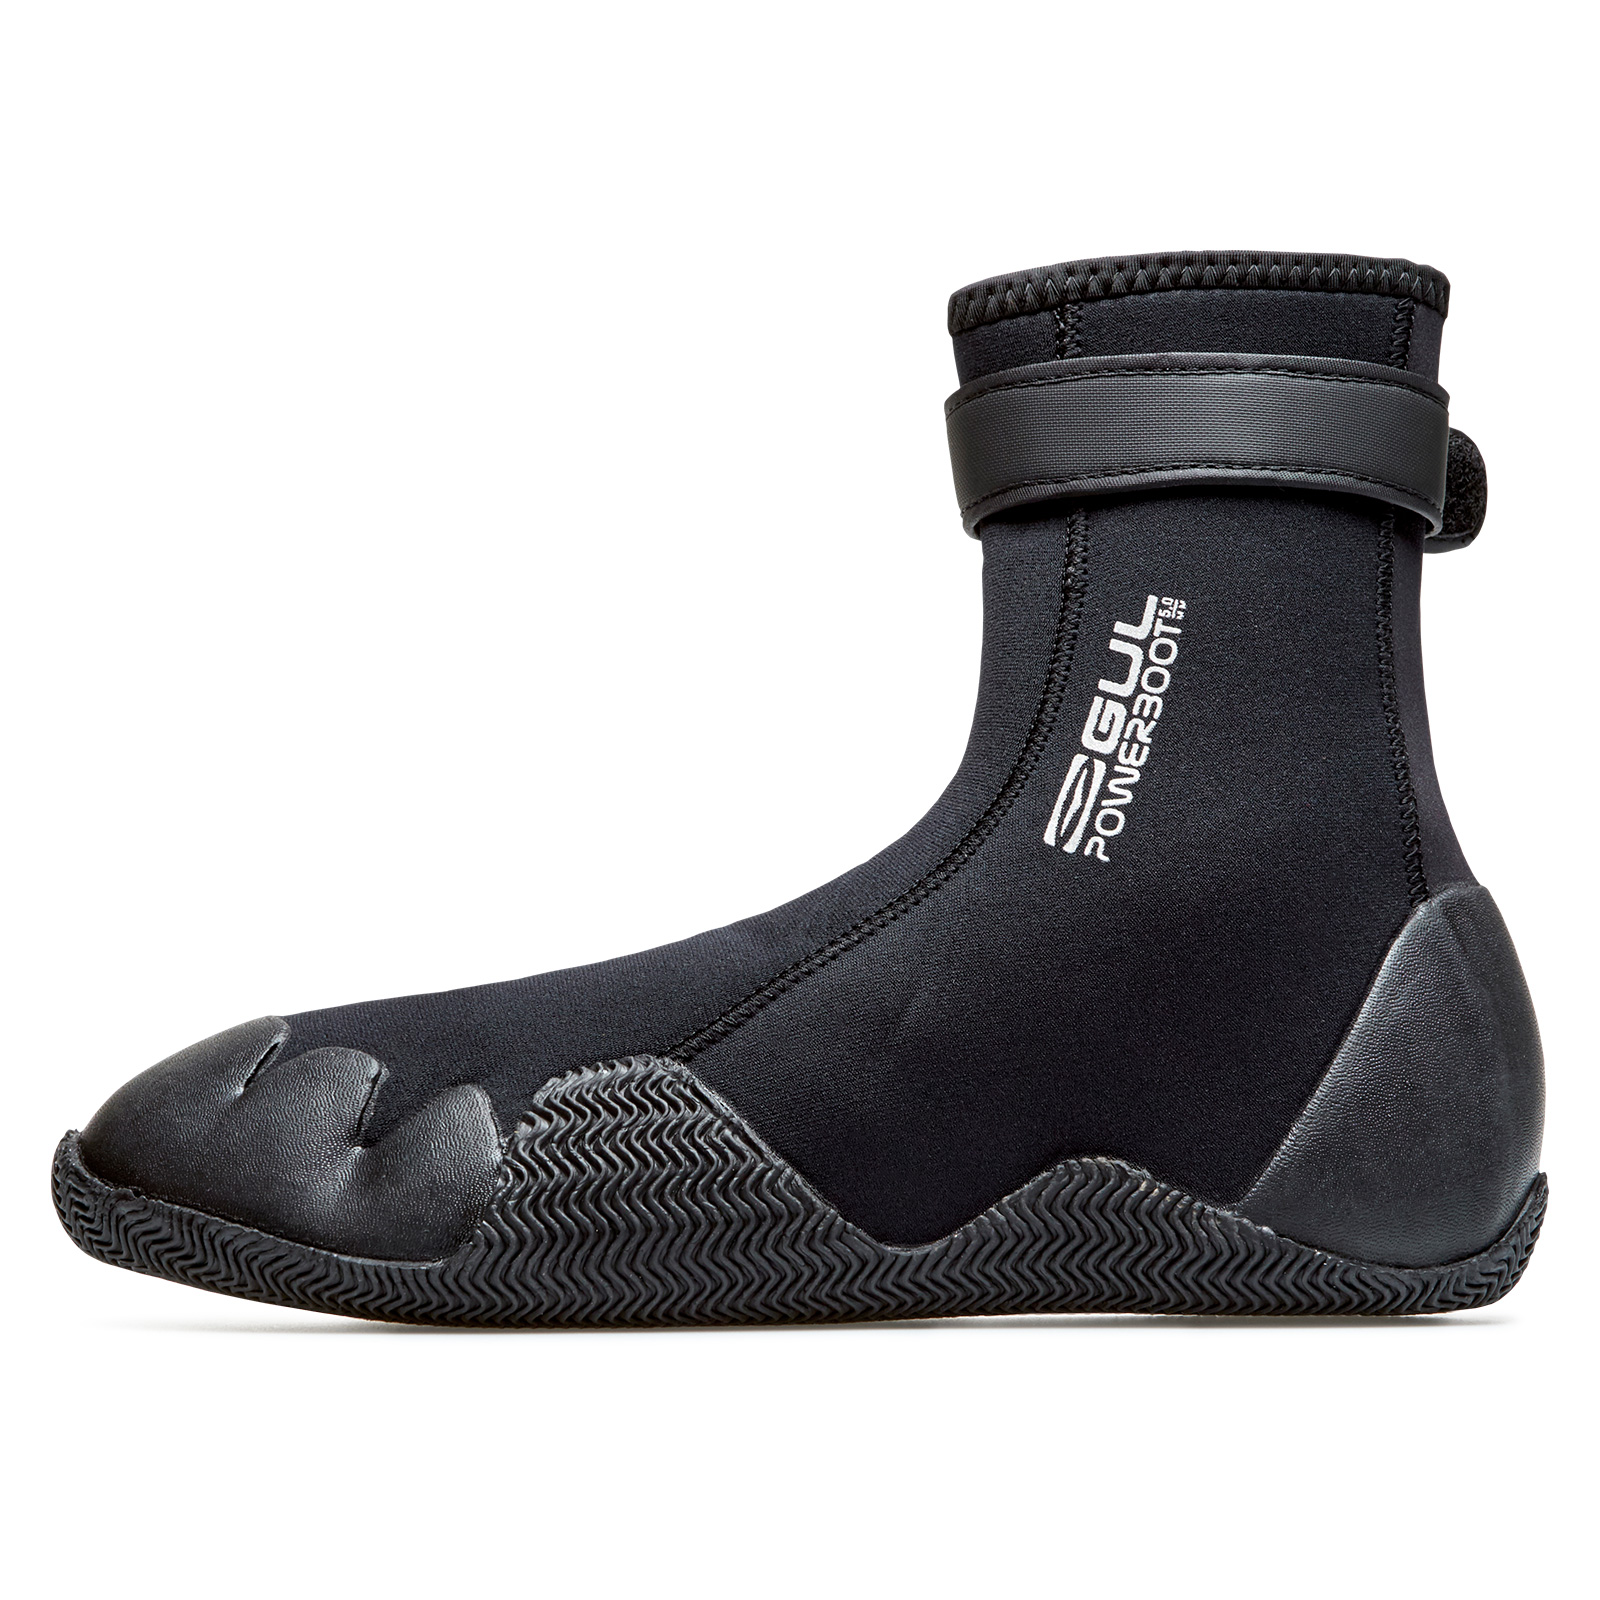 Gul-5mm-Power-Neoprene-Adult-Wetsuit-Boots-Watersports-Surf-Sail-Swim-Mens-Boot thumbnail 26